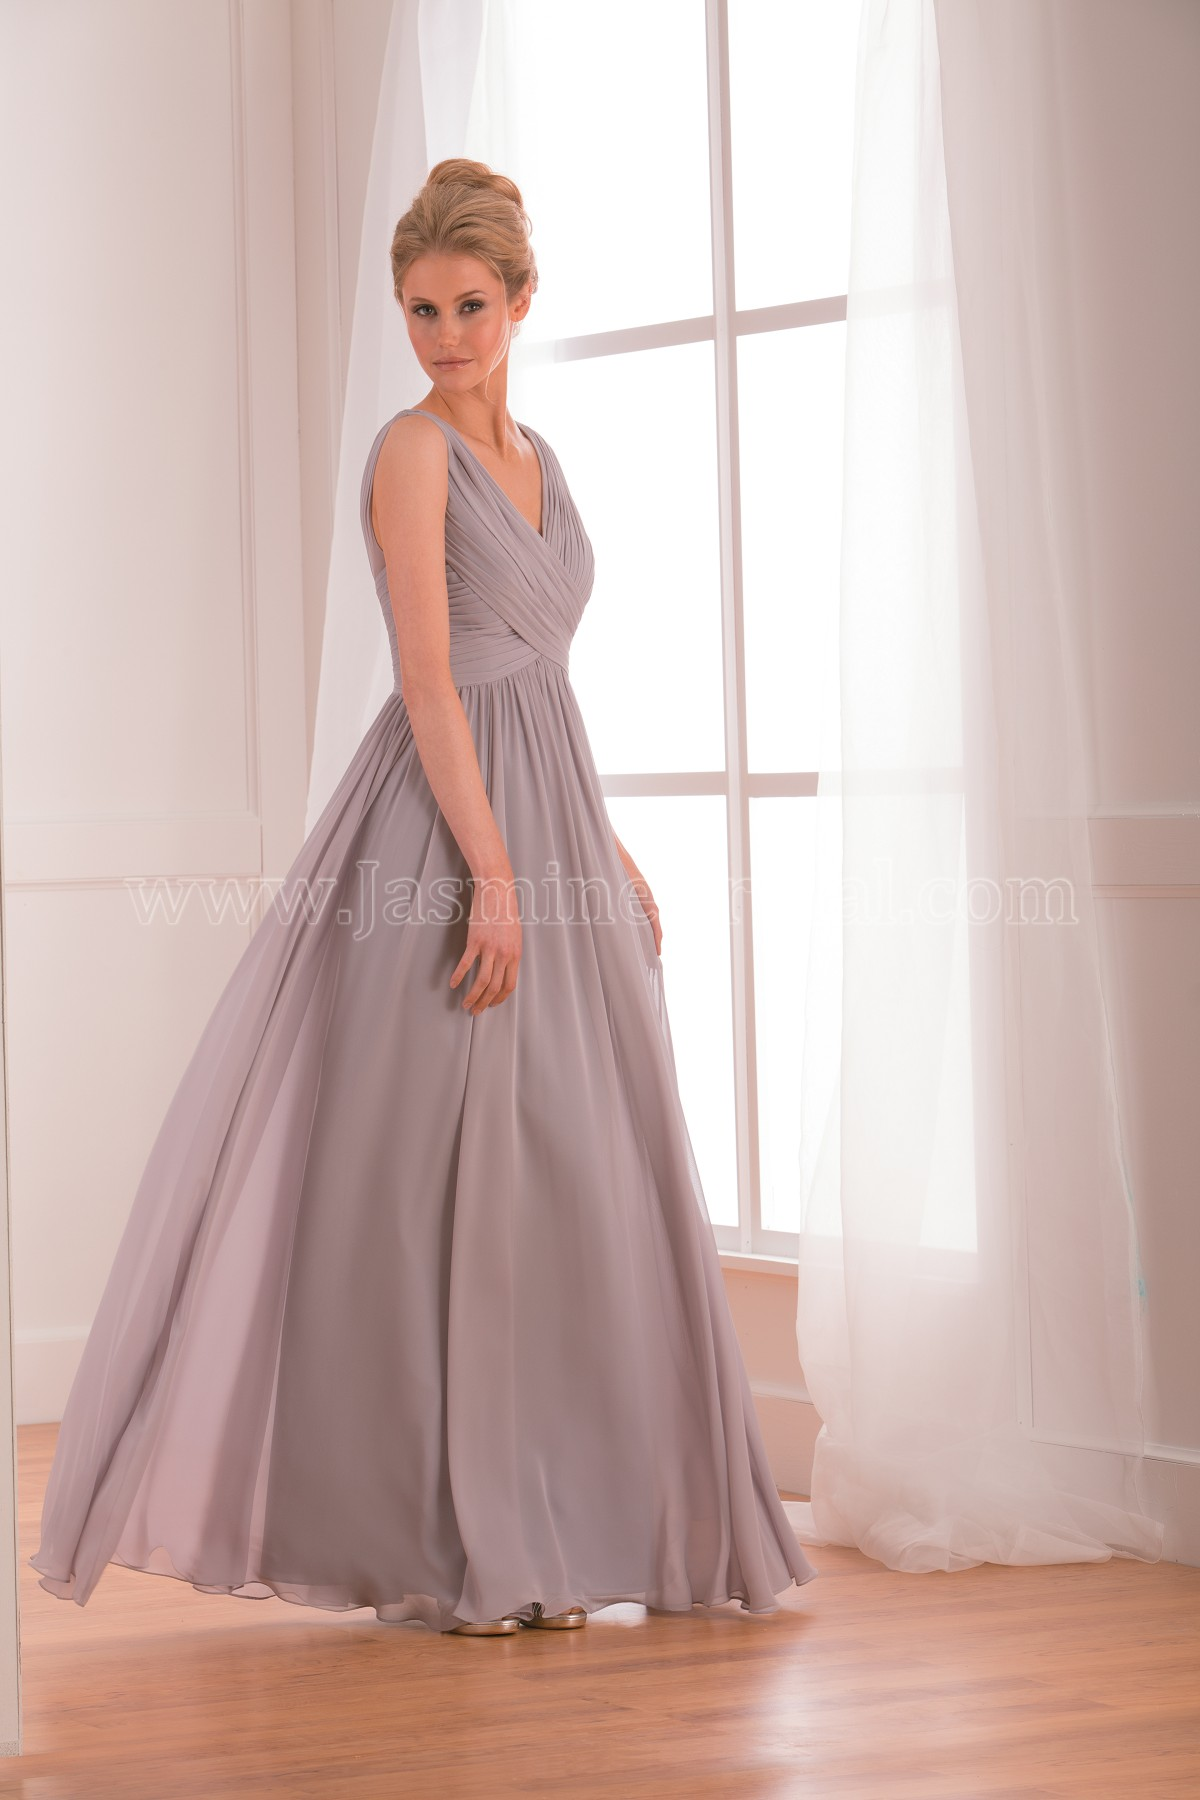 bridesmaid-dresses-B173002-F